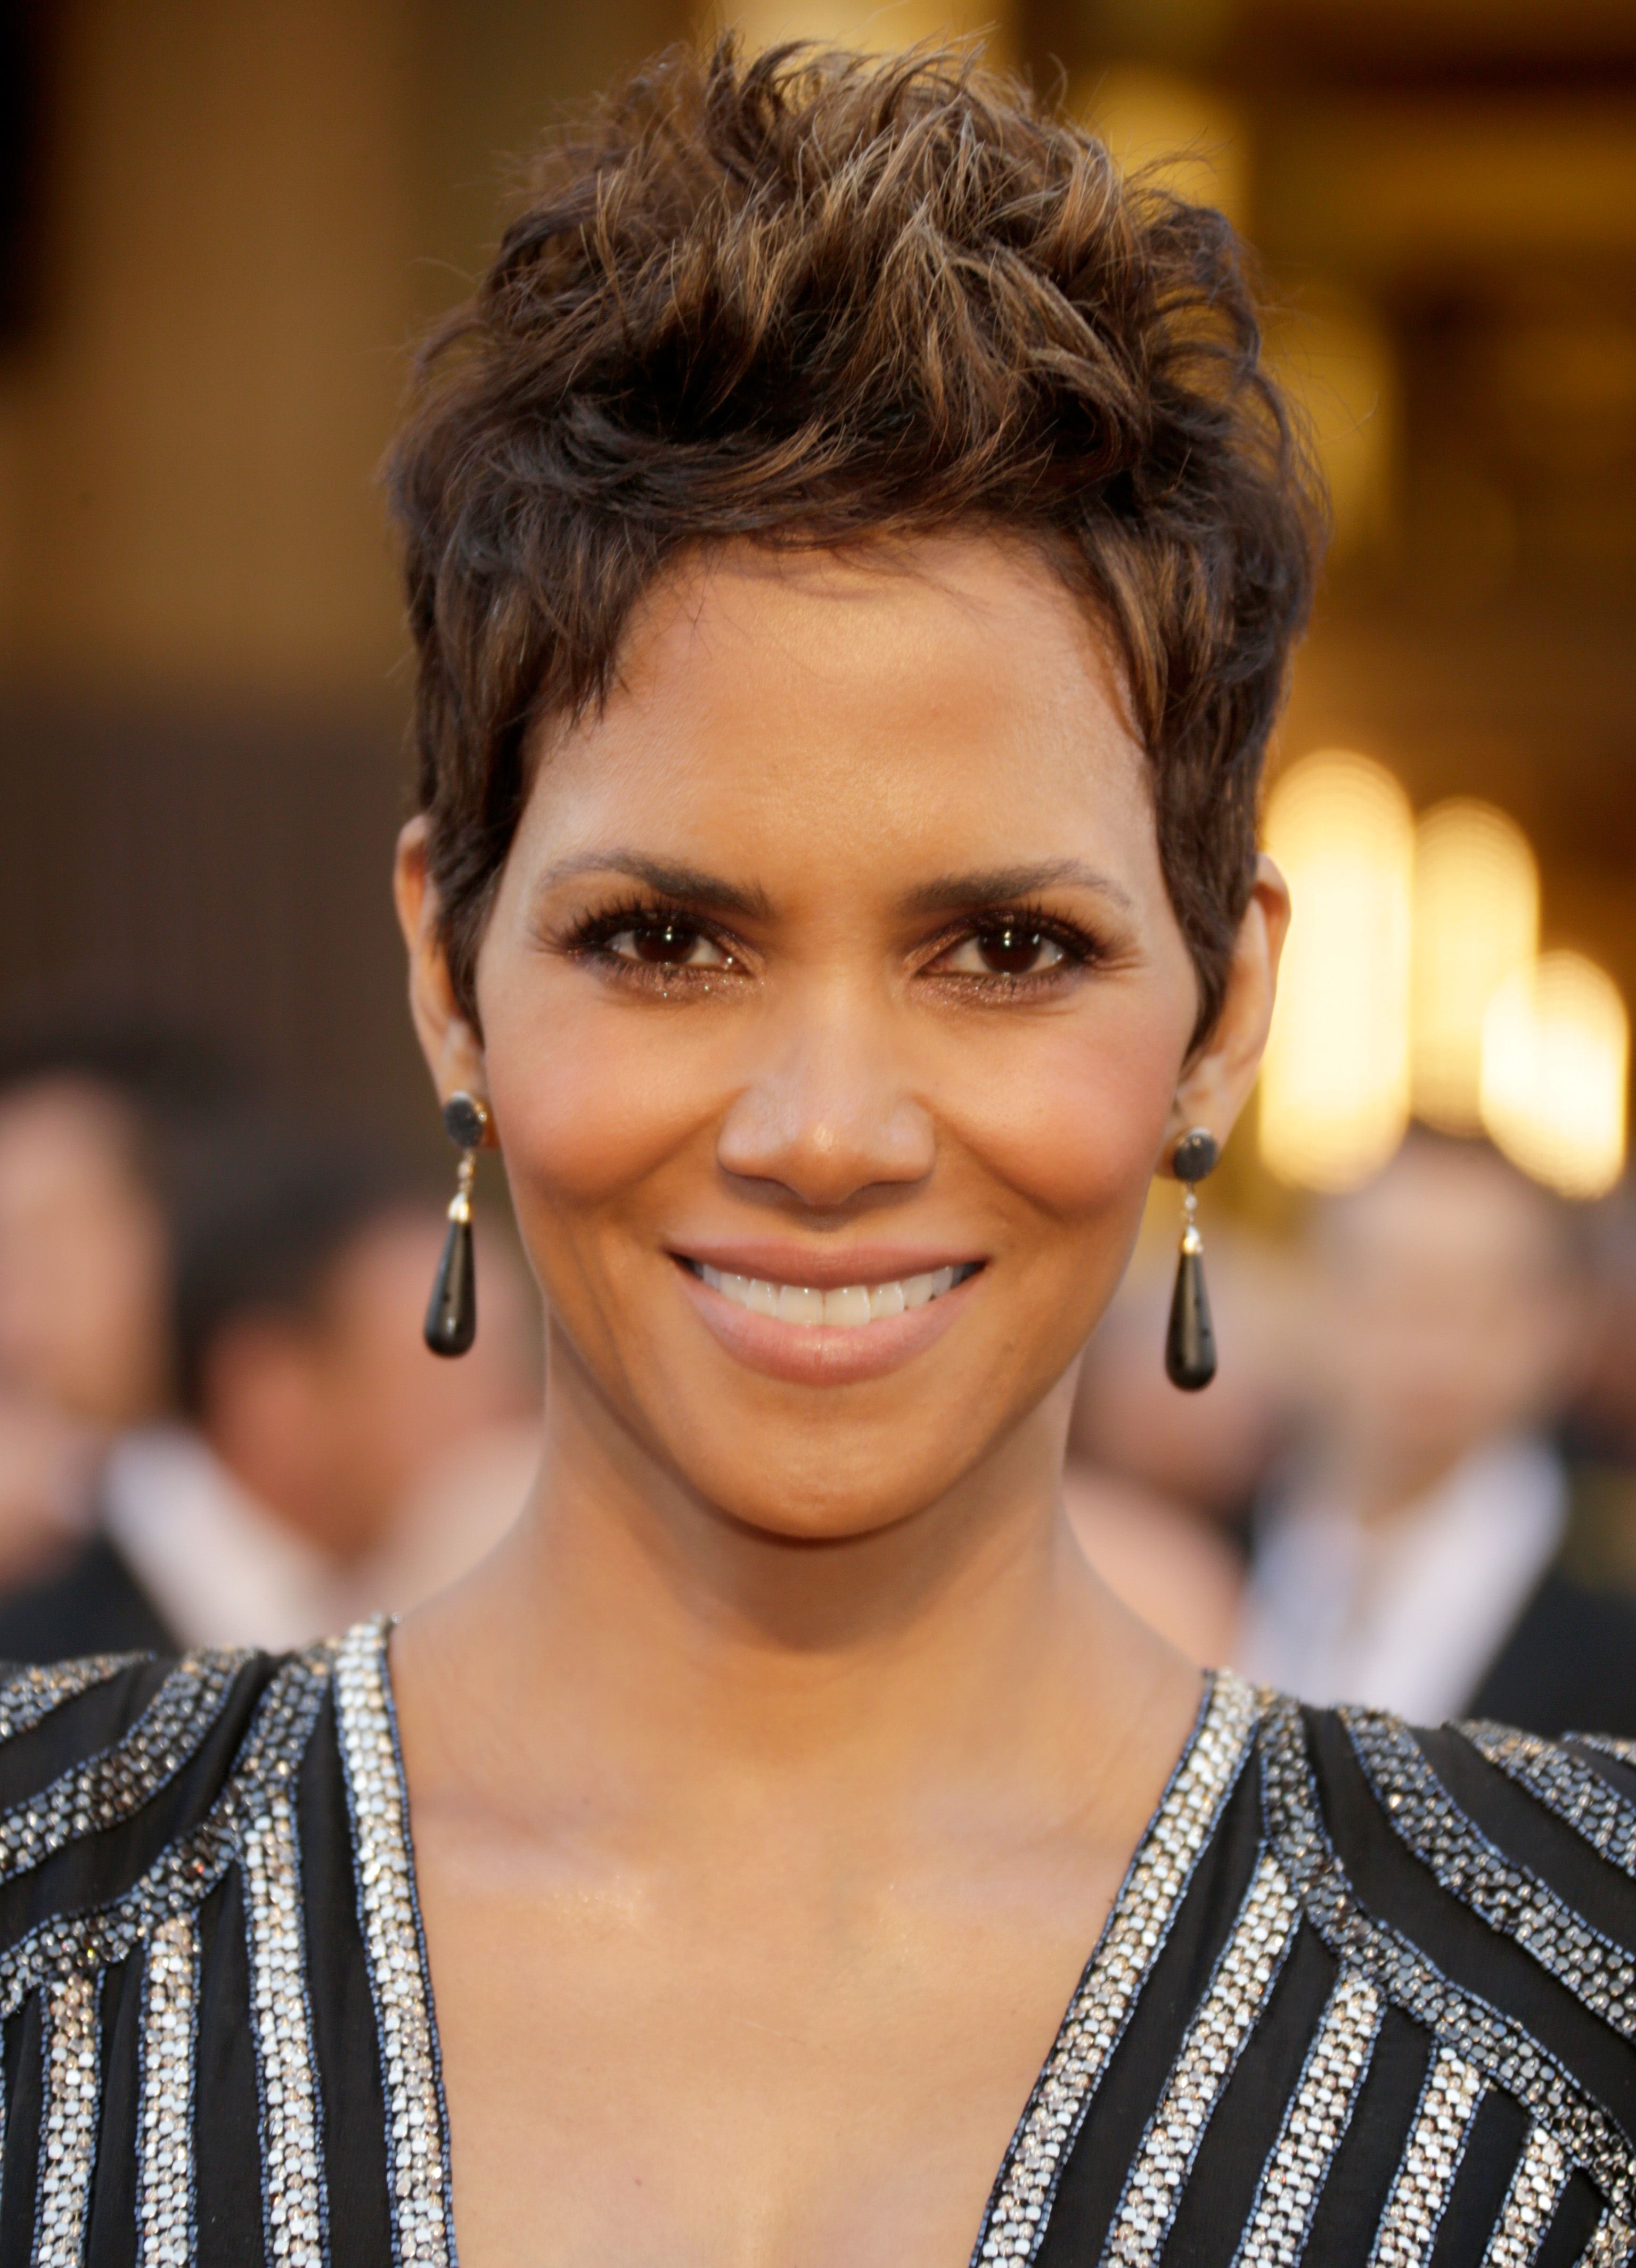 20 Classic And Cool Short Hairstyles For Older Women Intended For Famous Retro Side Hairdos With Texture (View 1 of 20)